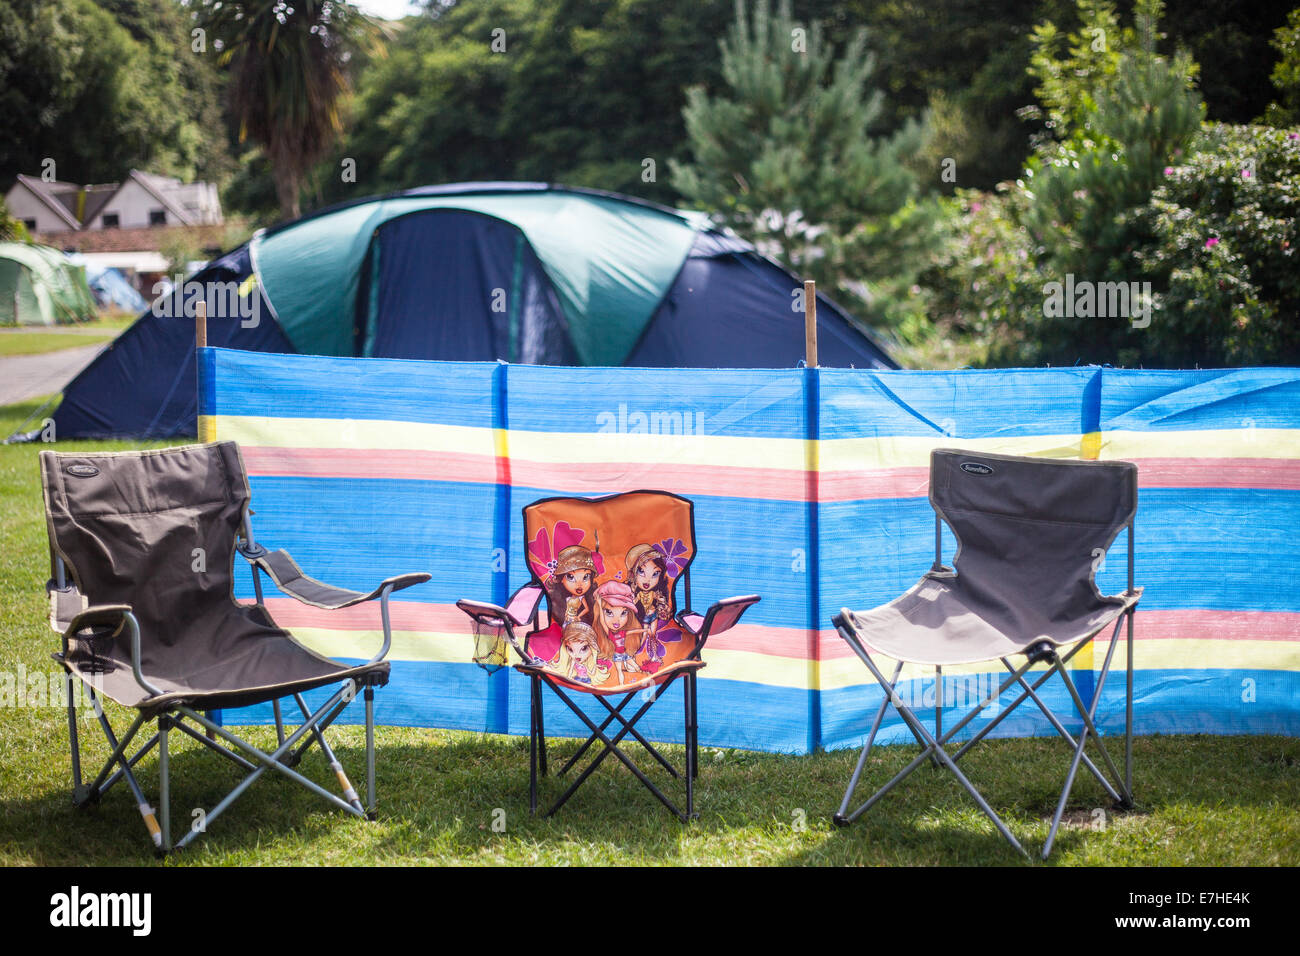 Glamping and camping chairs and windbreak on a campsite - Stock Image